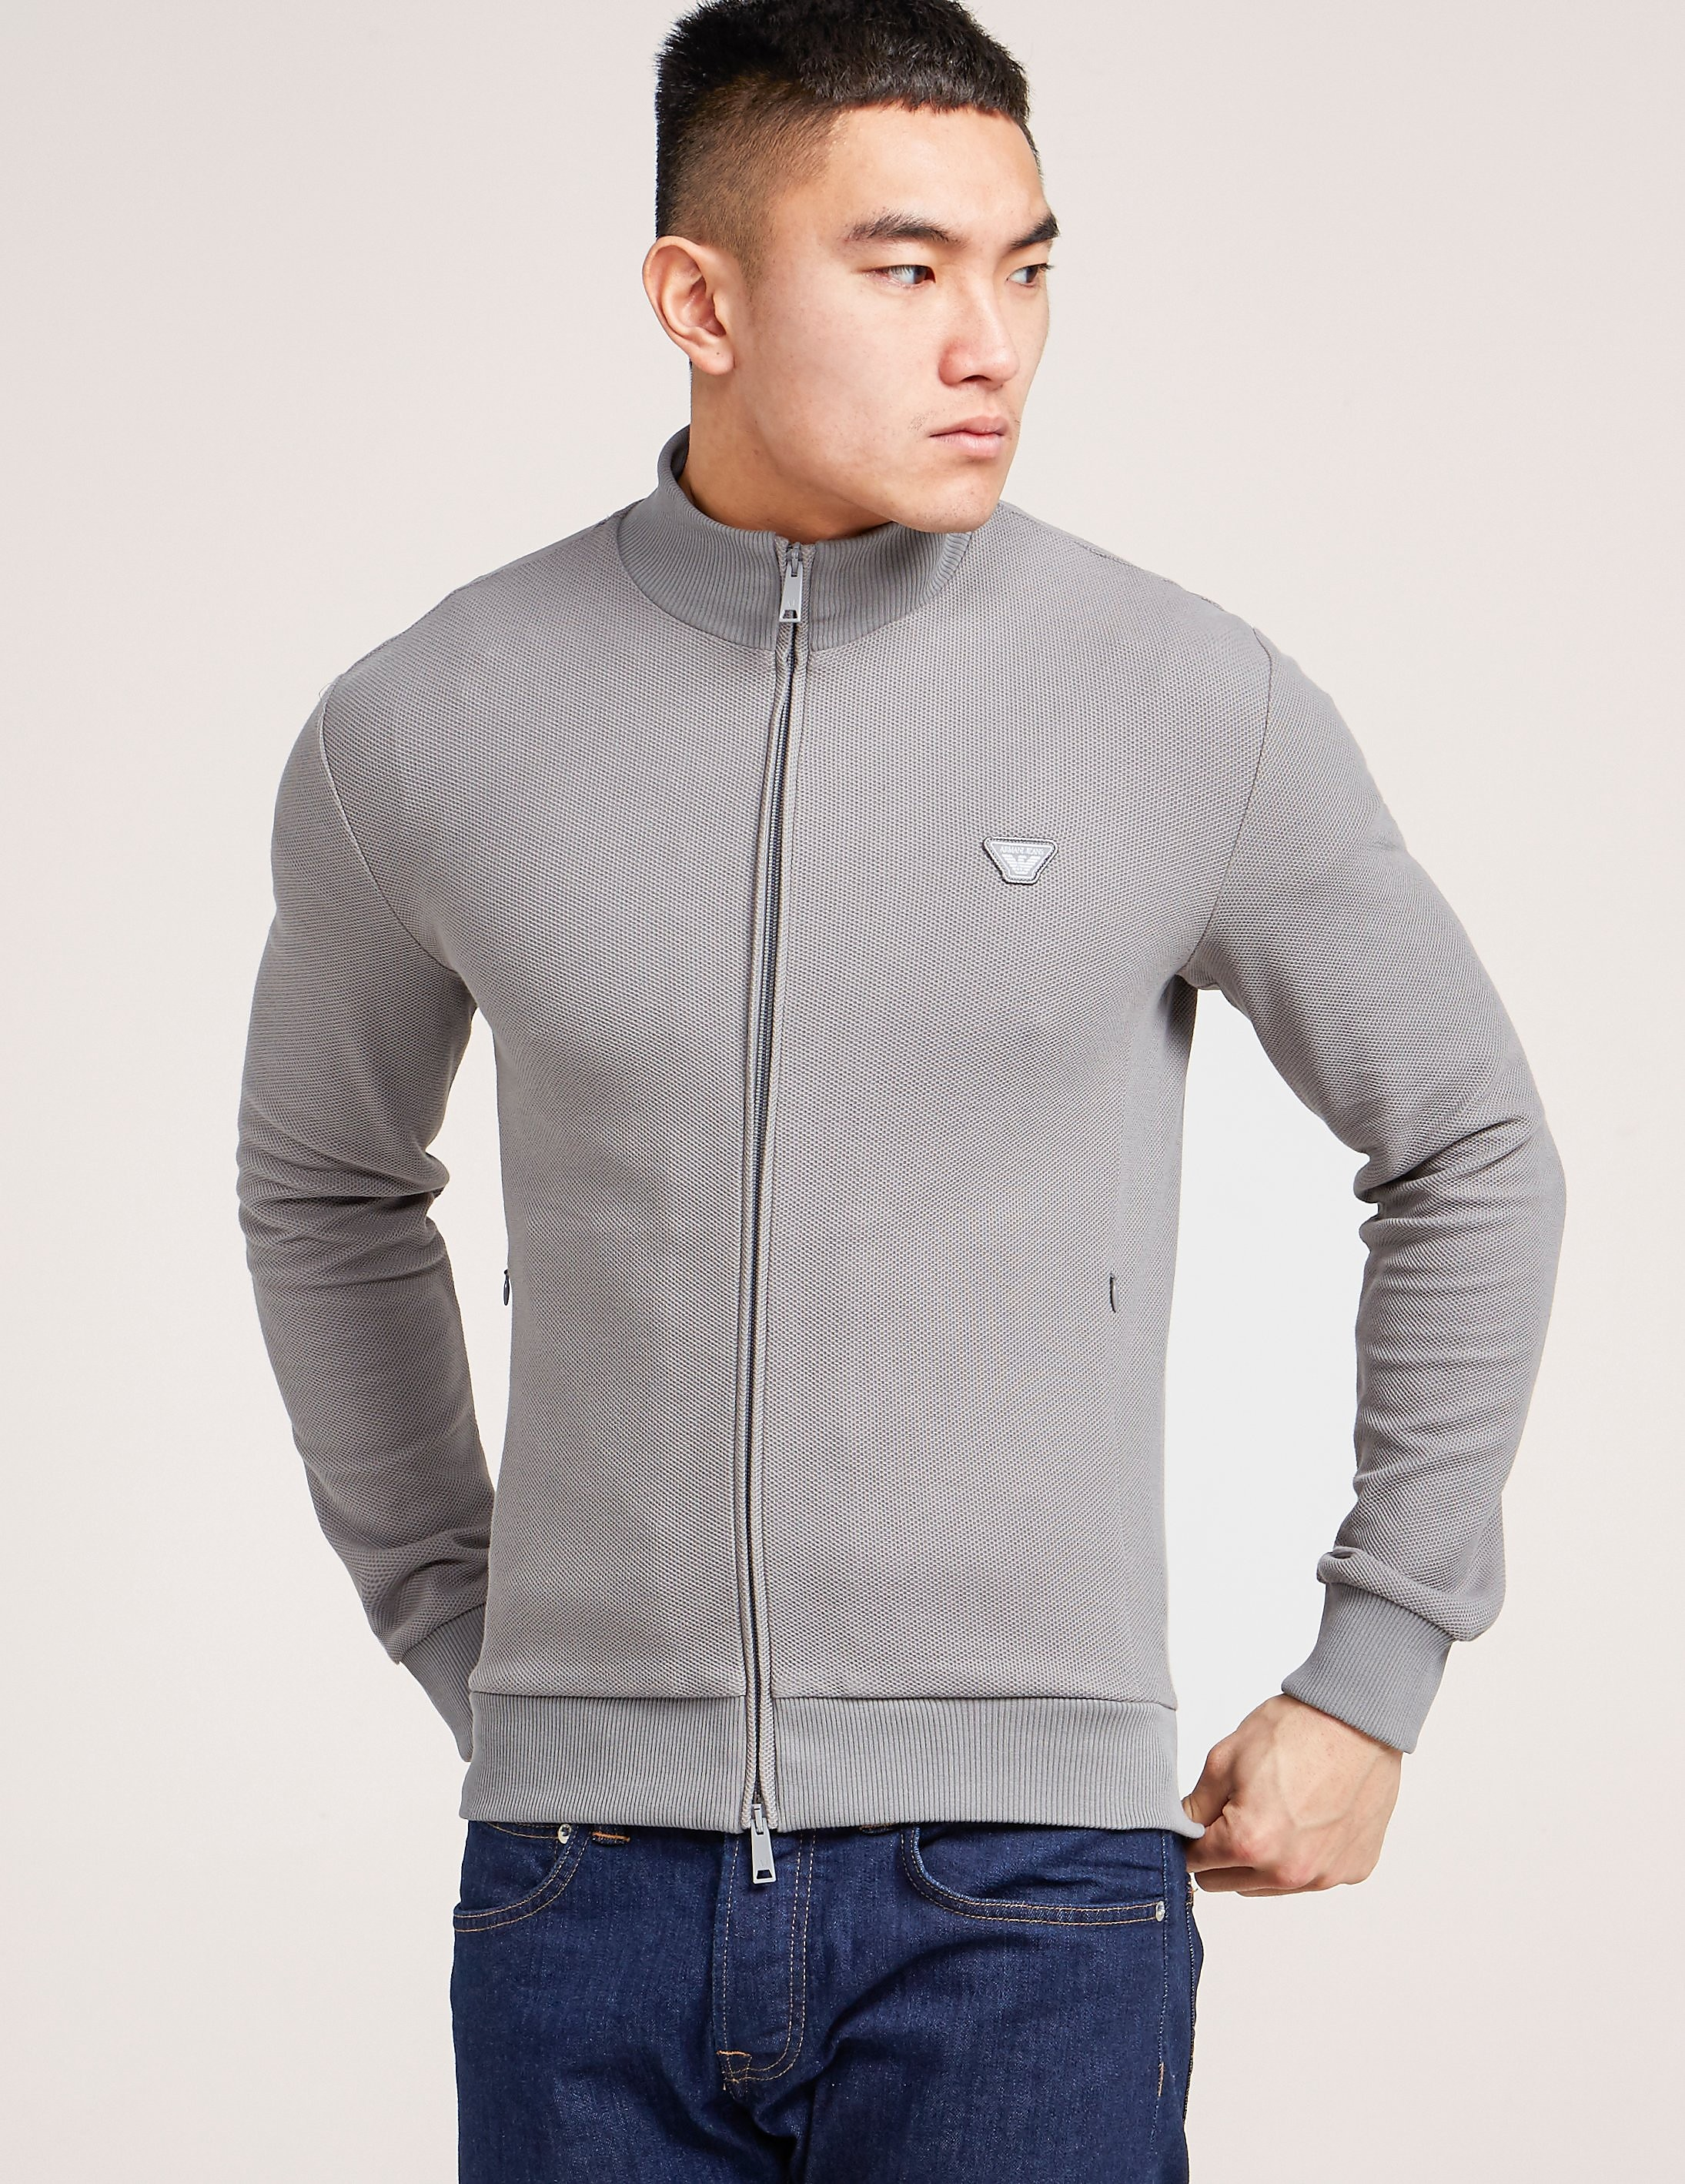 Armani Jeans Pique Zip Through Sweatshirt